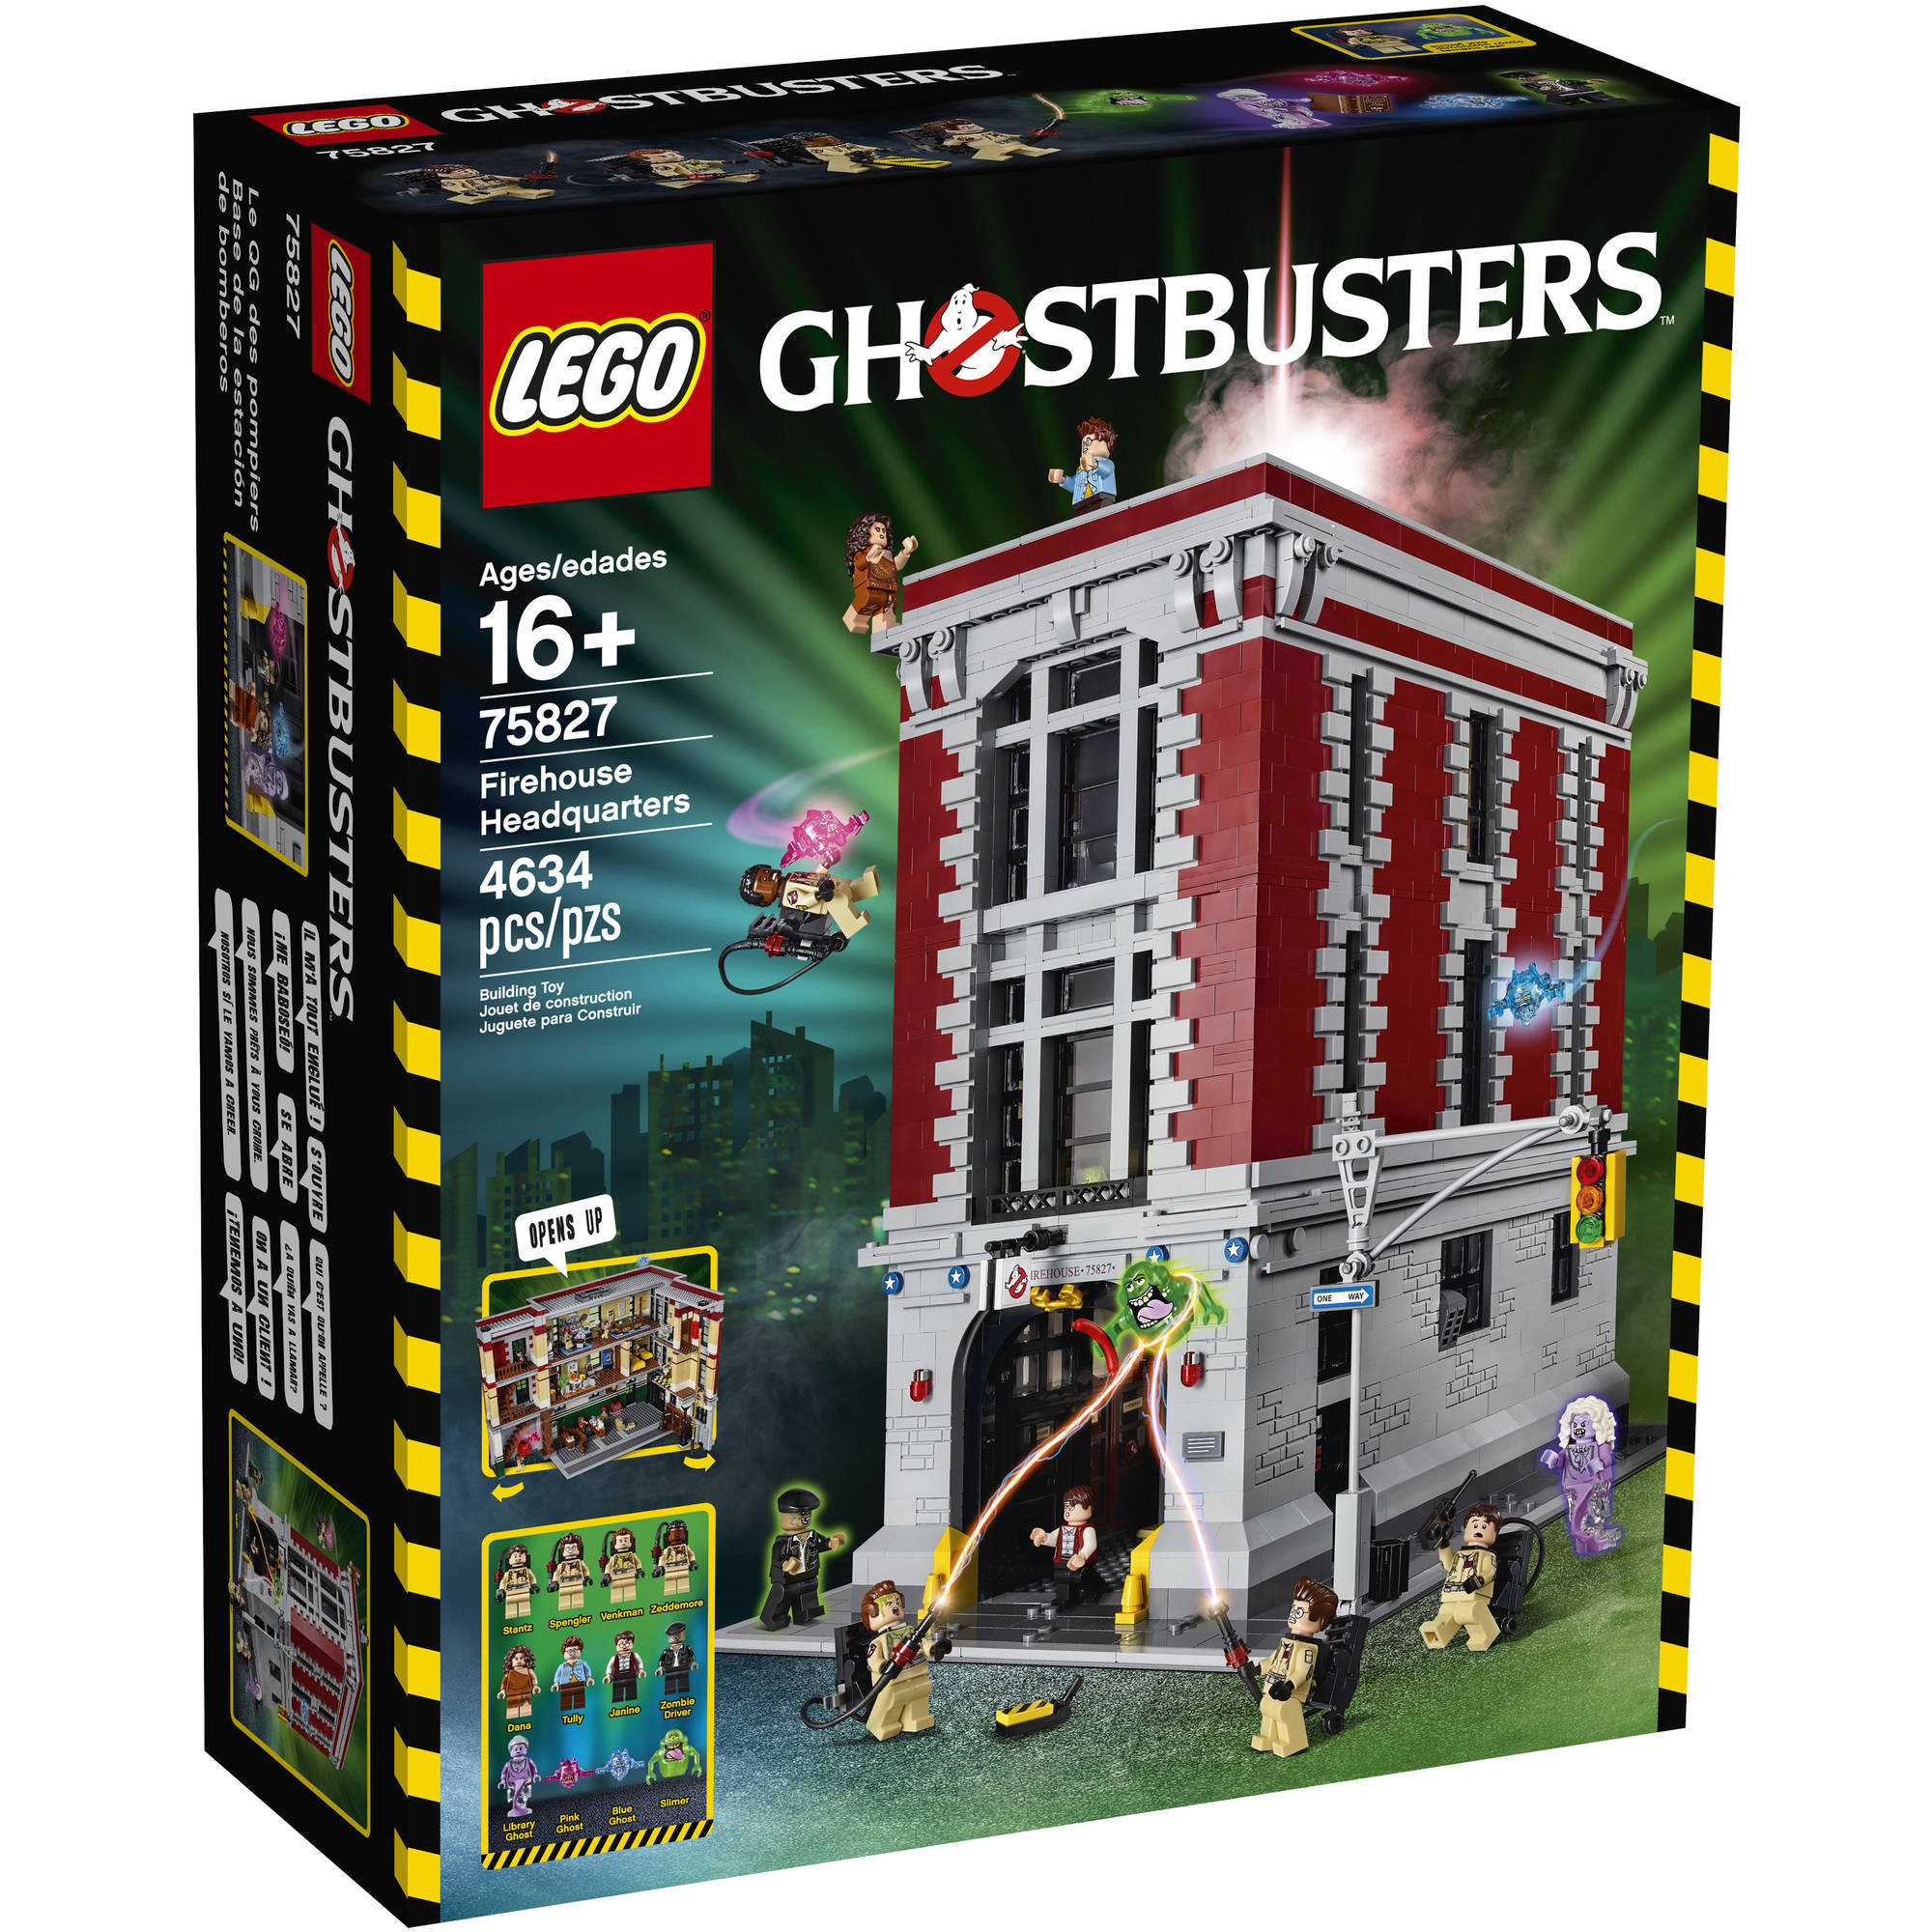 Lego Ghostbusters Firehouse Headquarters, 75827 by LEGO Systems, Inc.